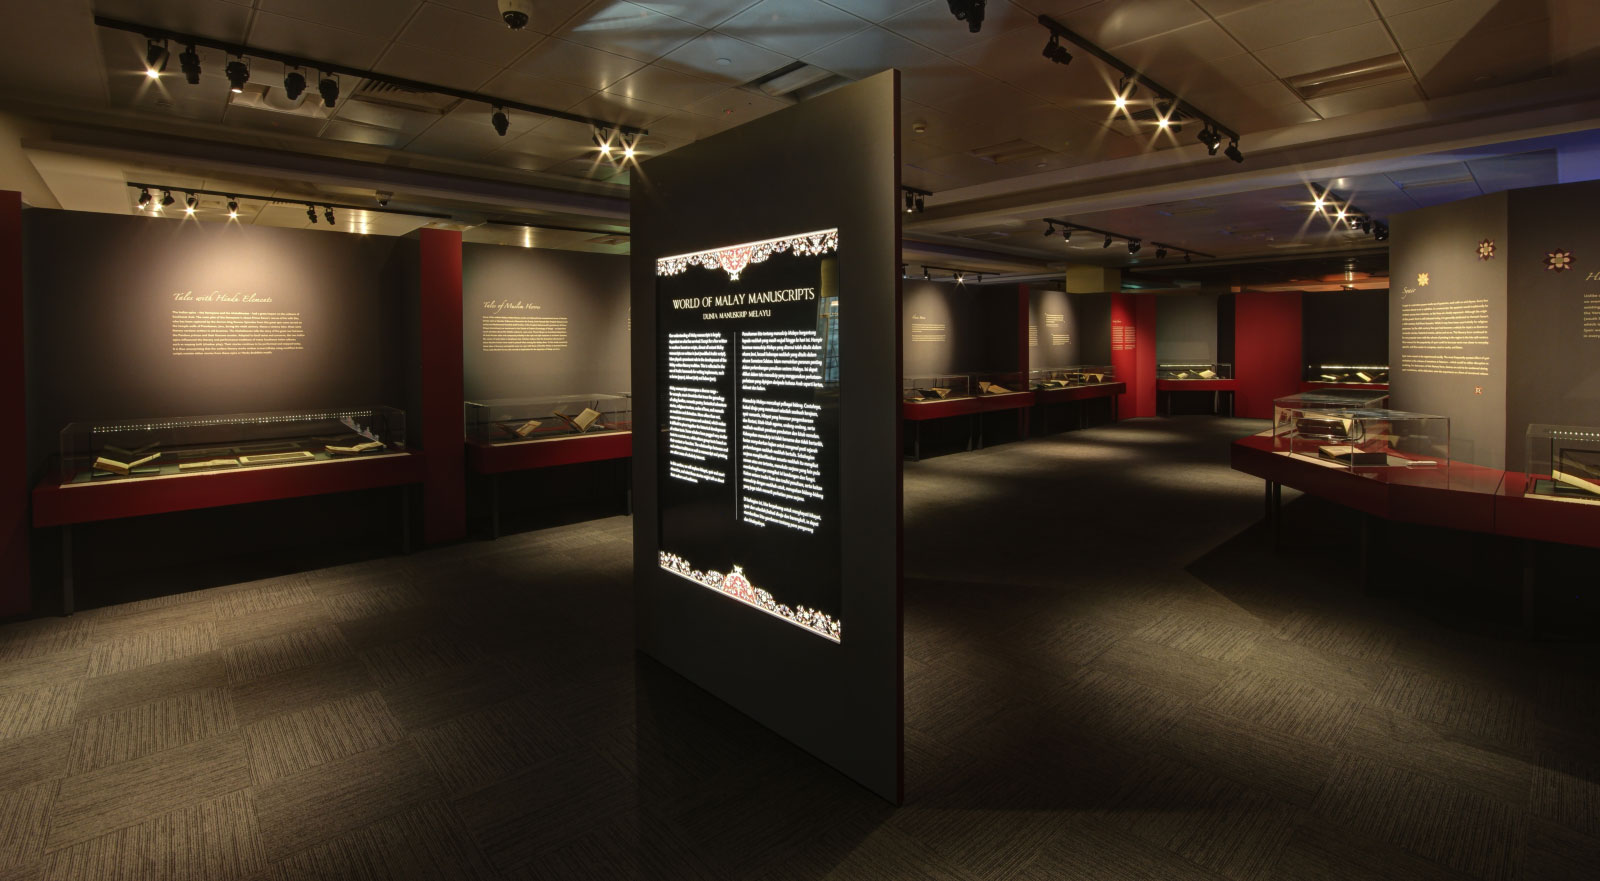 A photo showing the introduction wall of Tales of the Malay World